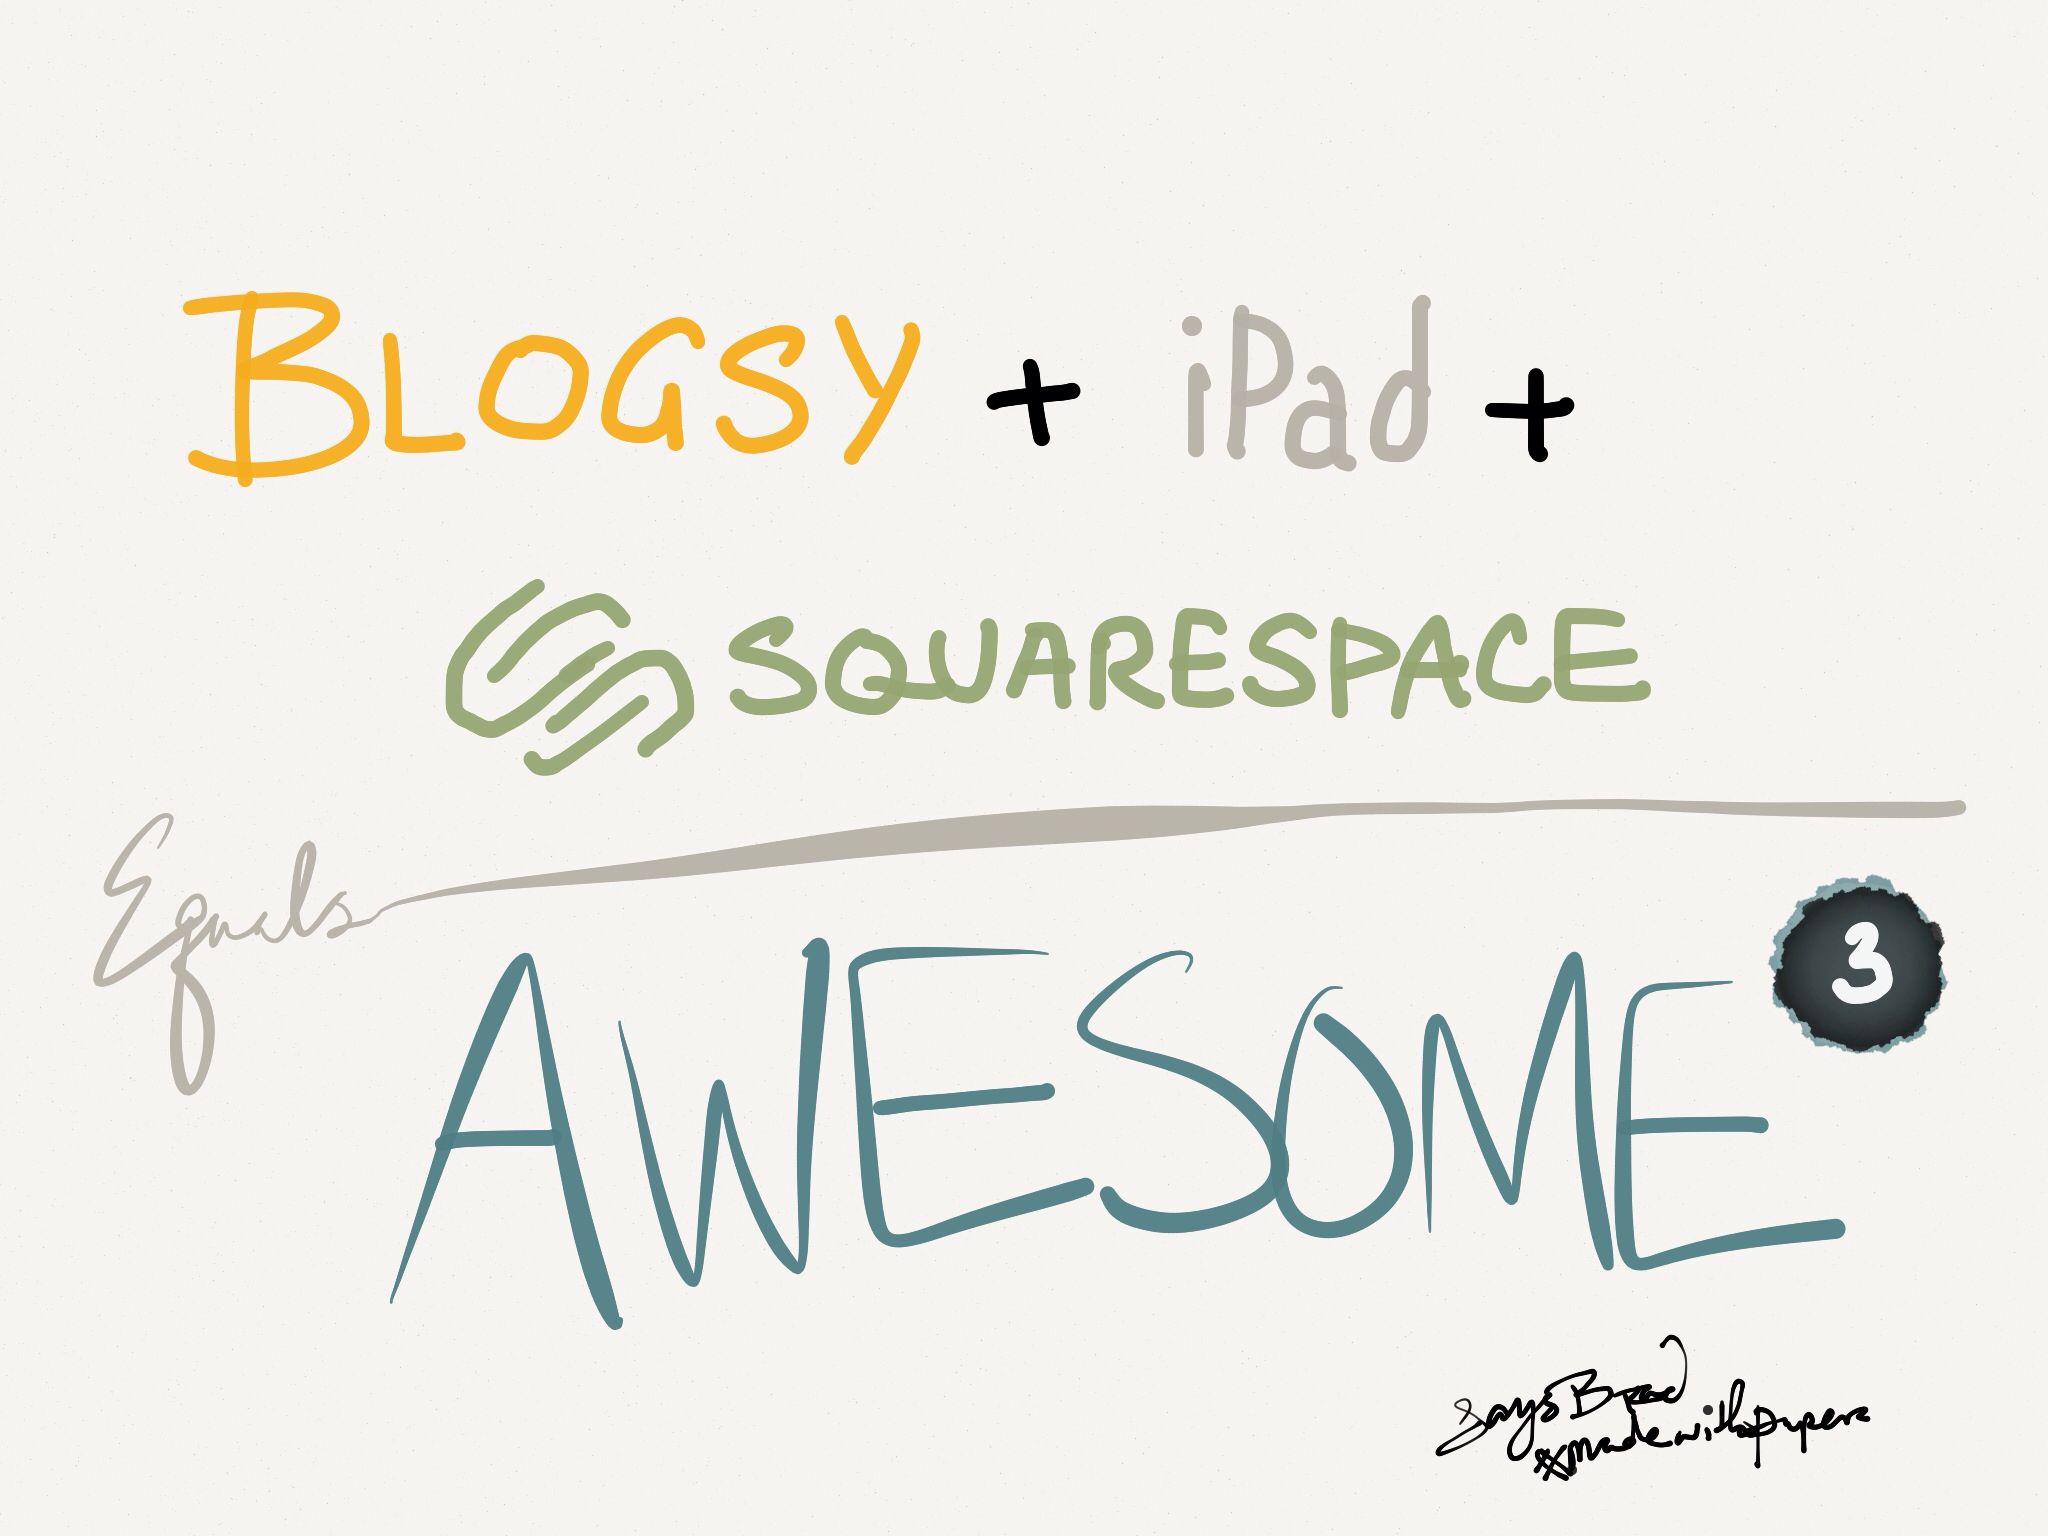 Blogsy + iPad + Squarespace = Awesome, cubed